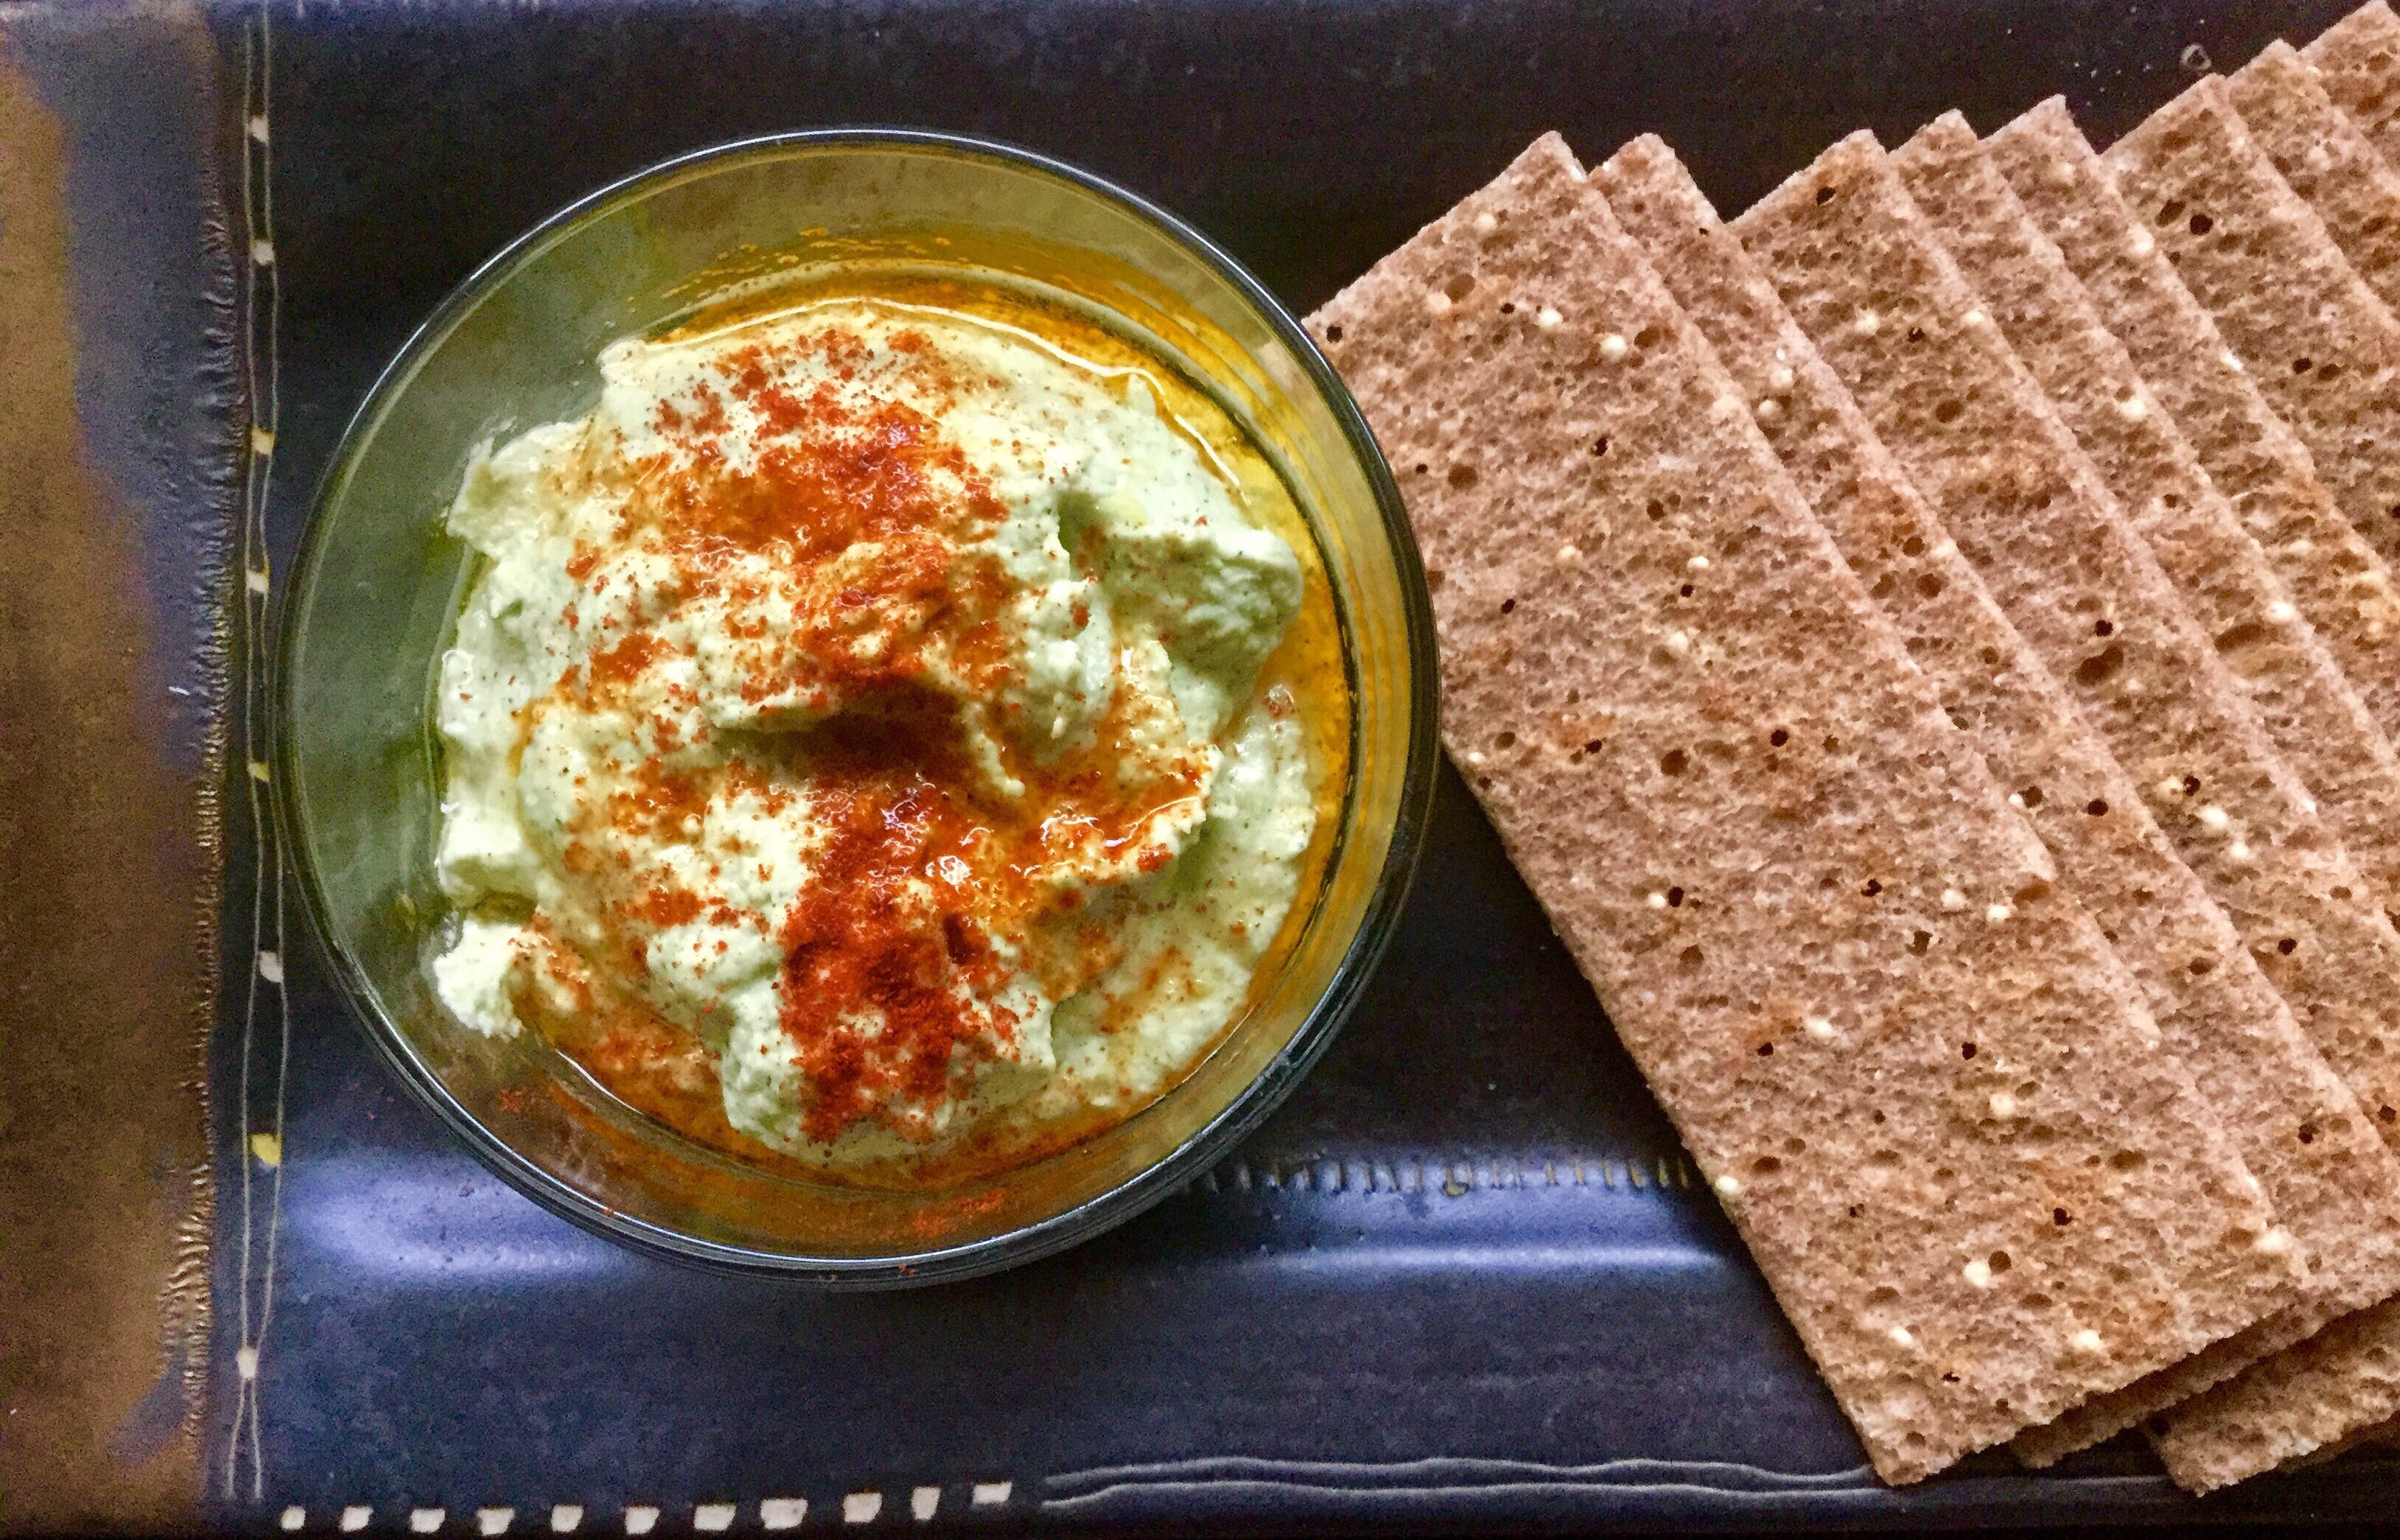 Edamame Hemp Heart Hummus (Edamammus) edamame, hemp hearts, olive oil (or avocado), garlic, lemon juice, salt, paprika or smoked paprika